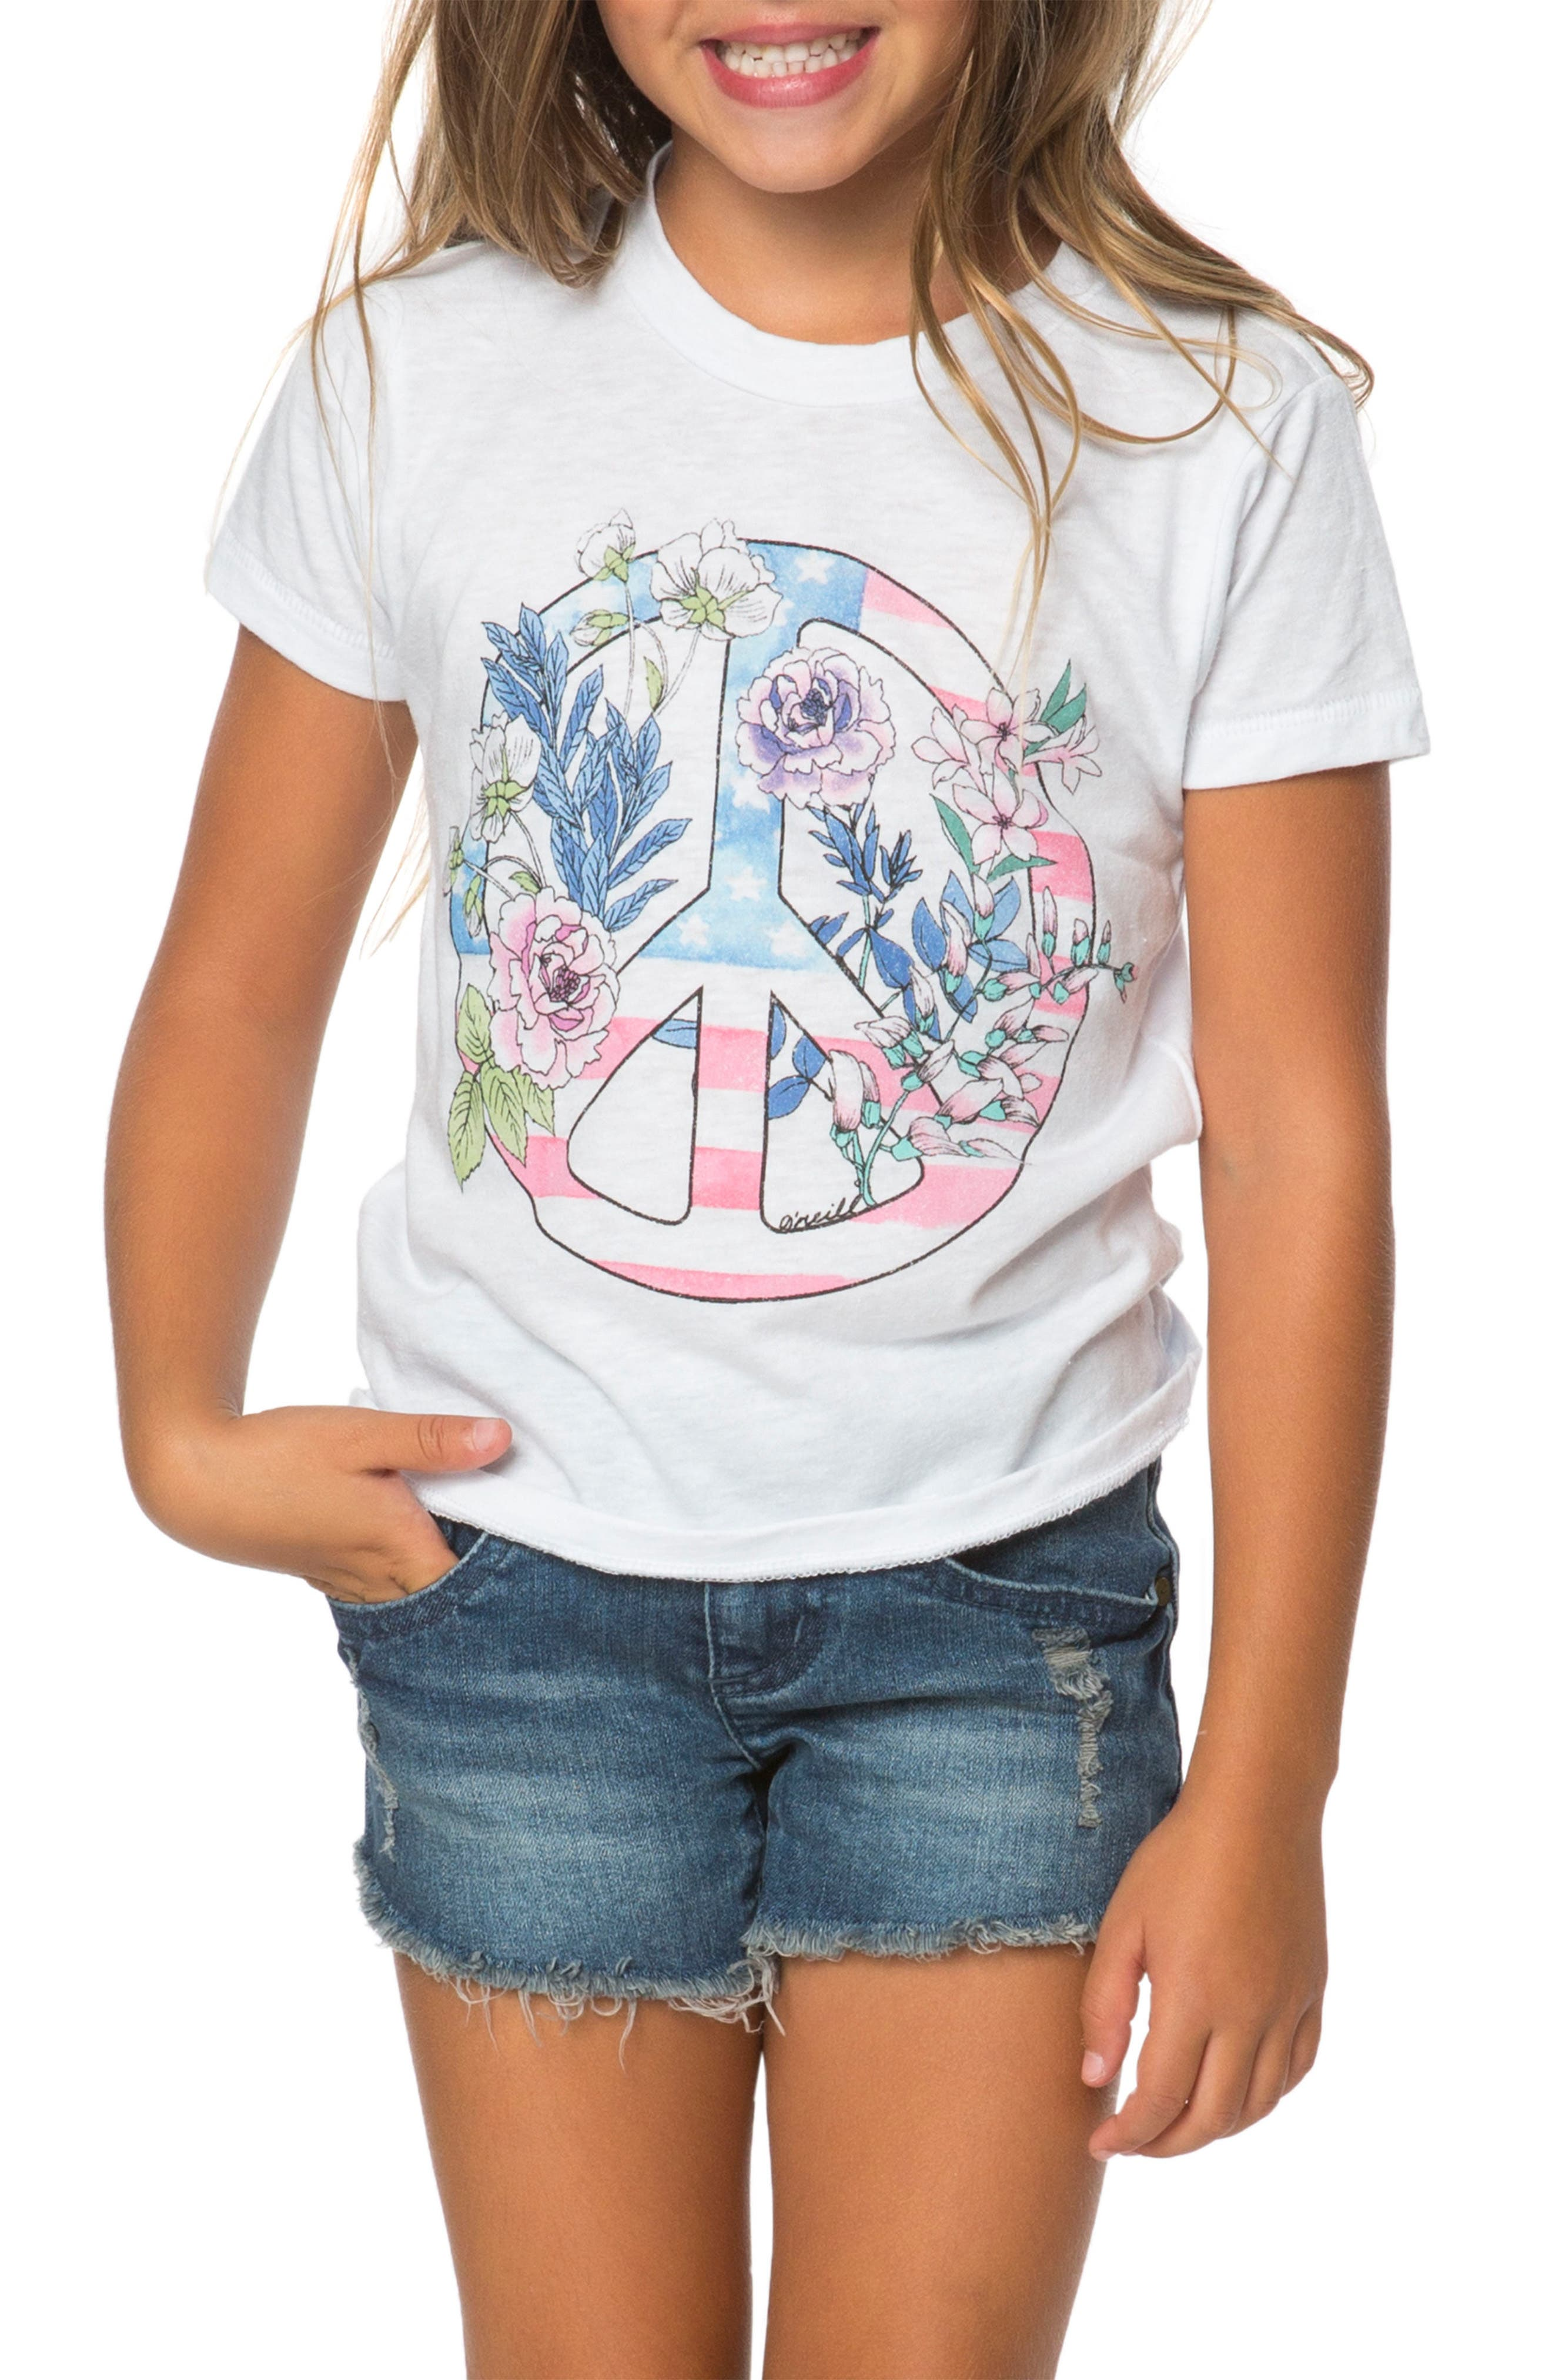 Main Image - O'Neill Freedom Flowers Graphic Tee (Toddler Girls & Little Girls)